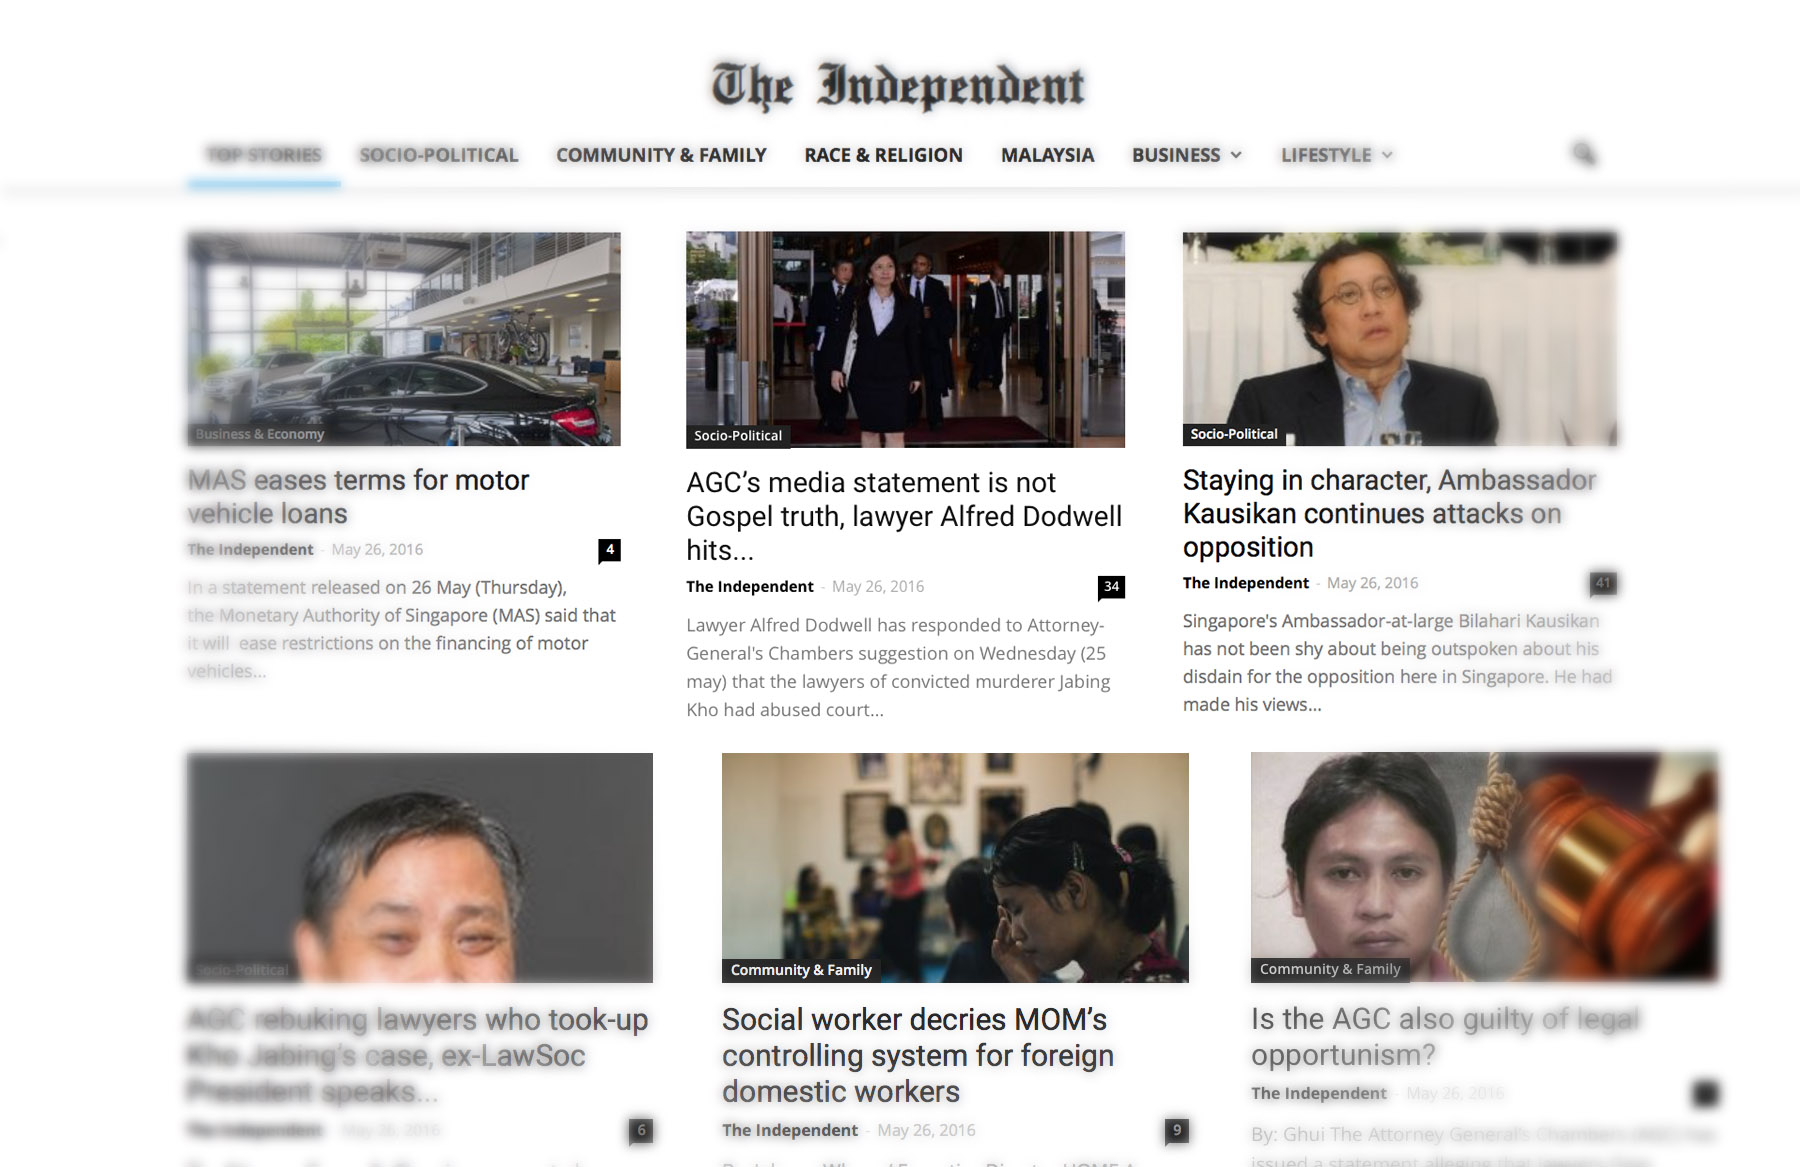 Independent Singapore uses analytics to engage audience in non-regulated platform